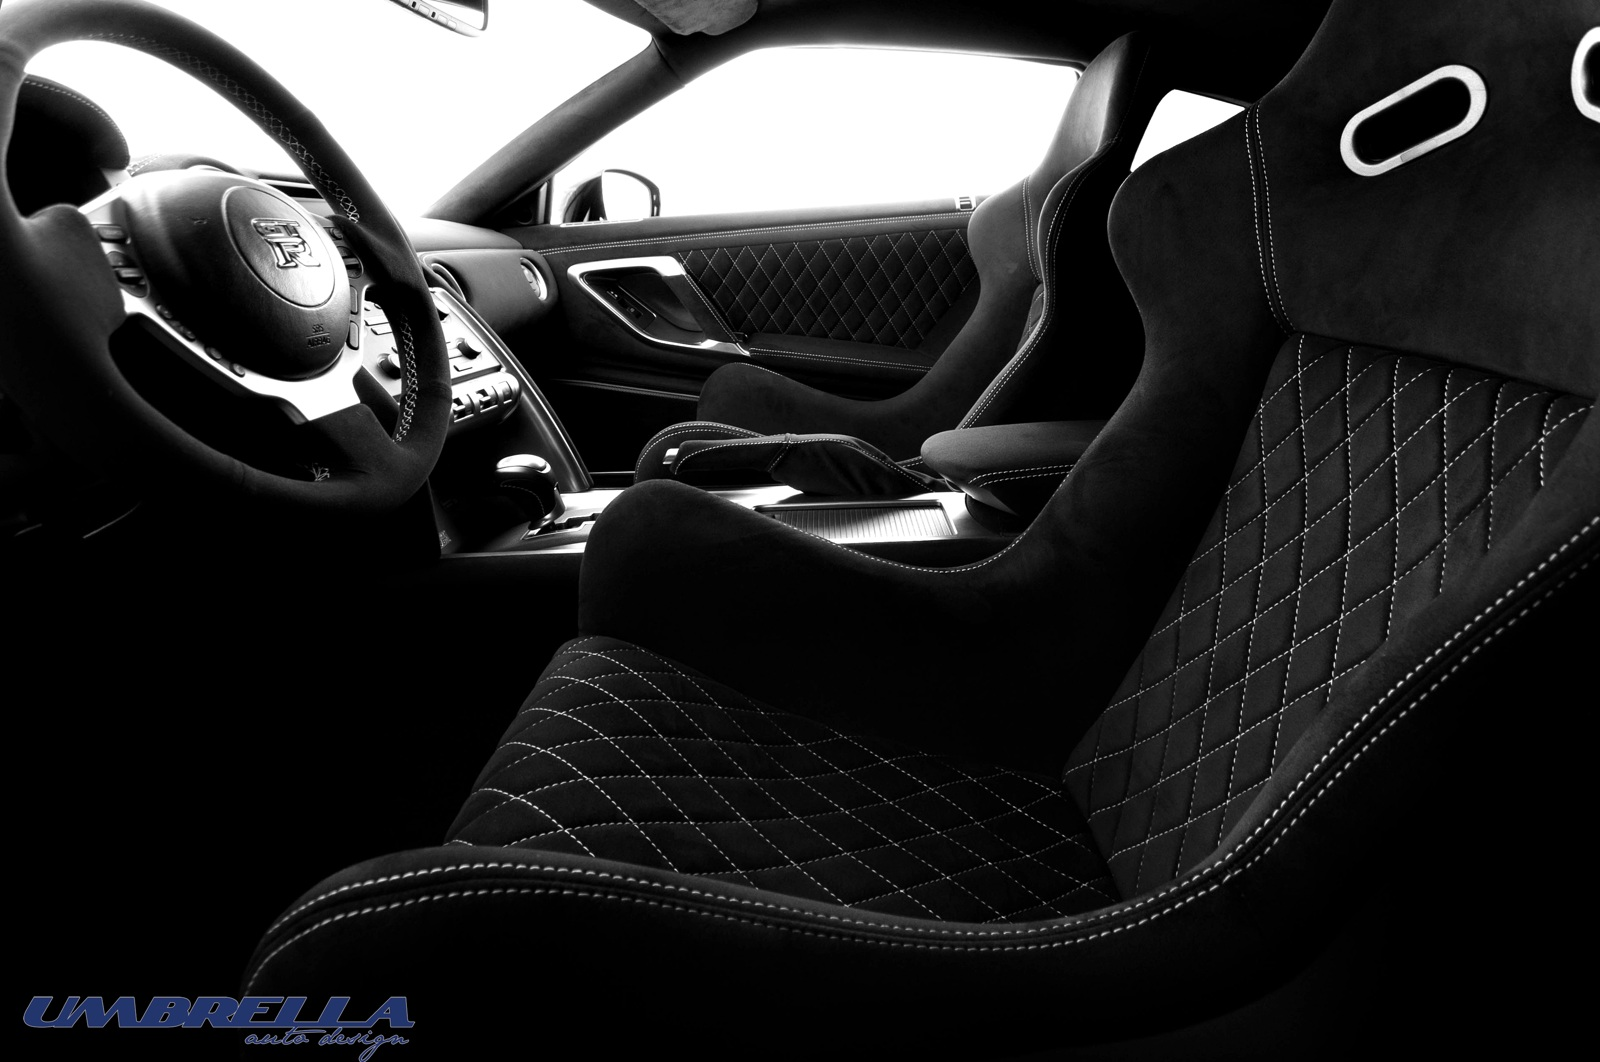 Umbrella Auto Design Gives The Nissan GTR An Interior Youu0027ll Have To Take  To The Cleaners News   Top Speed. »